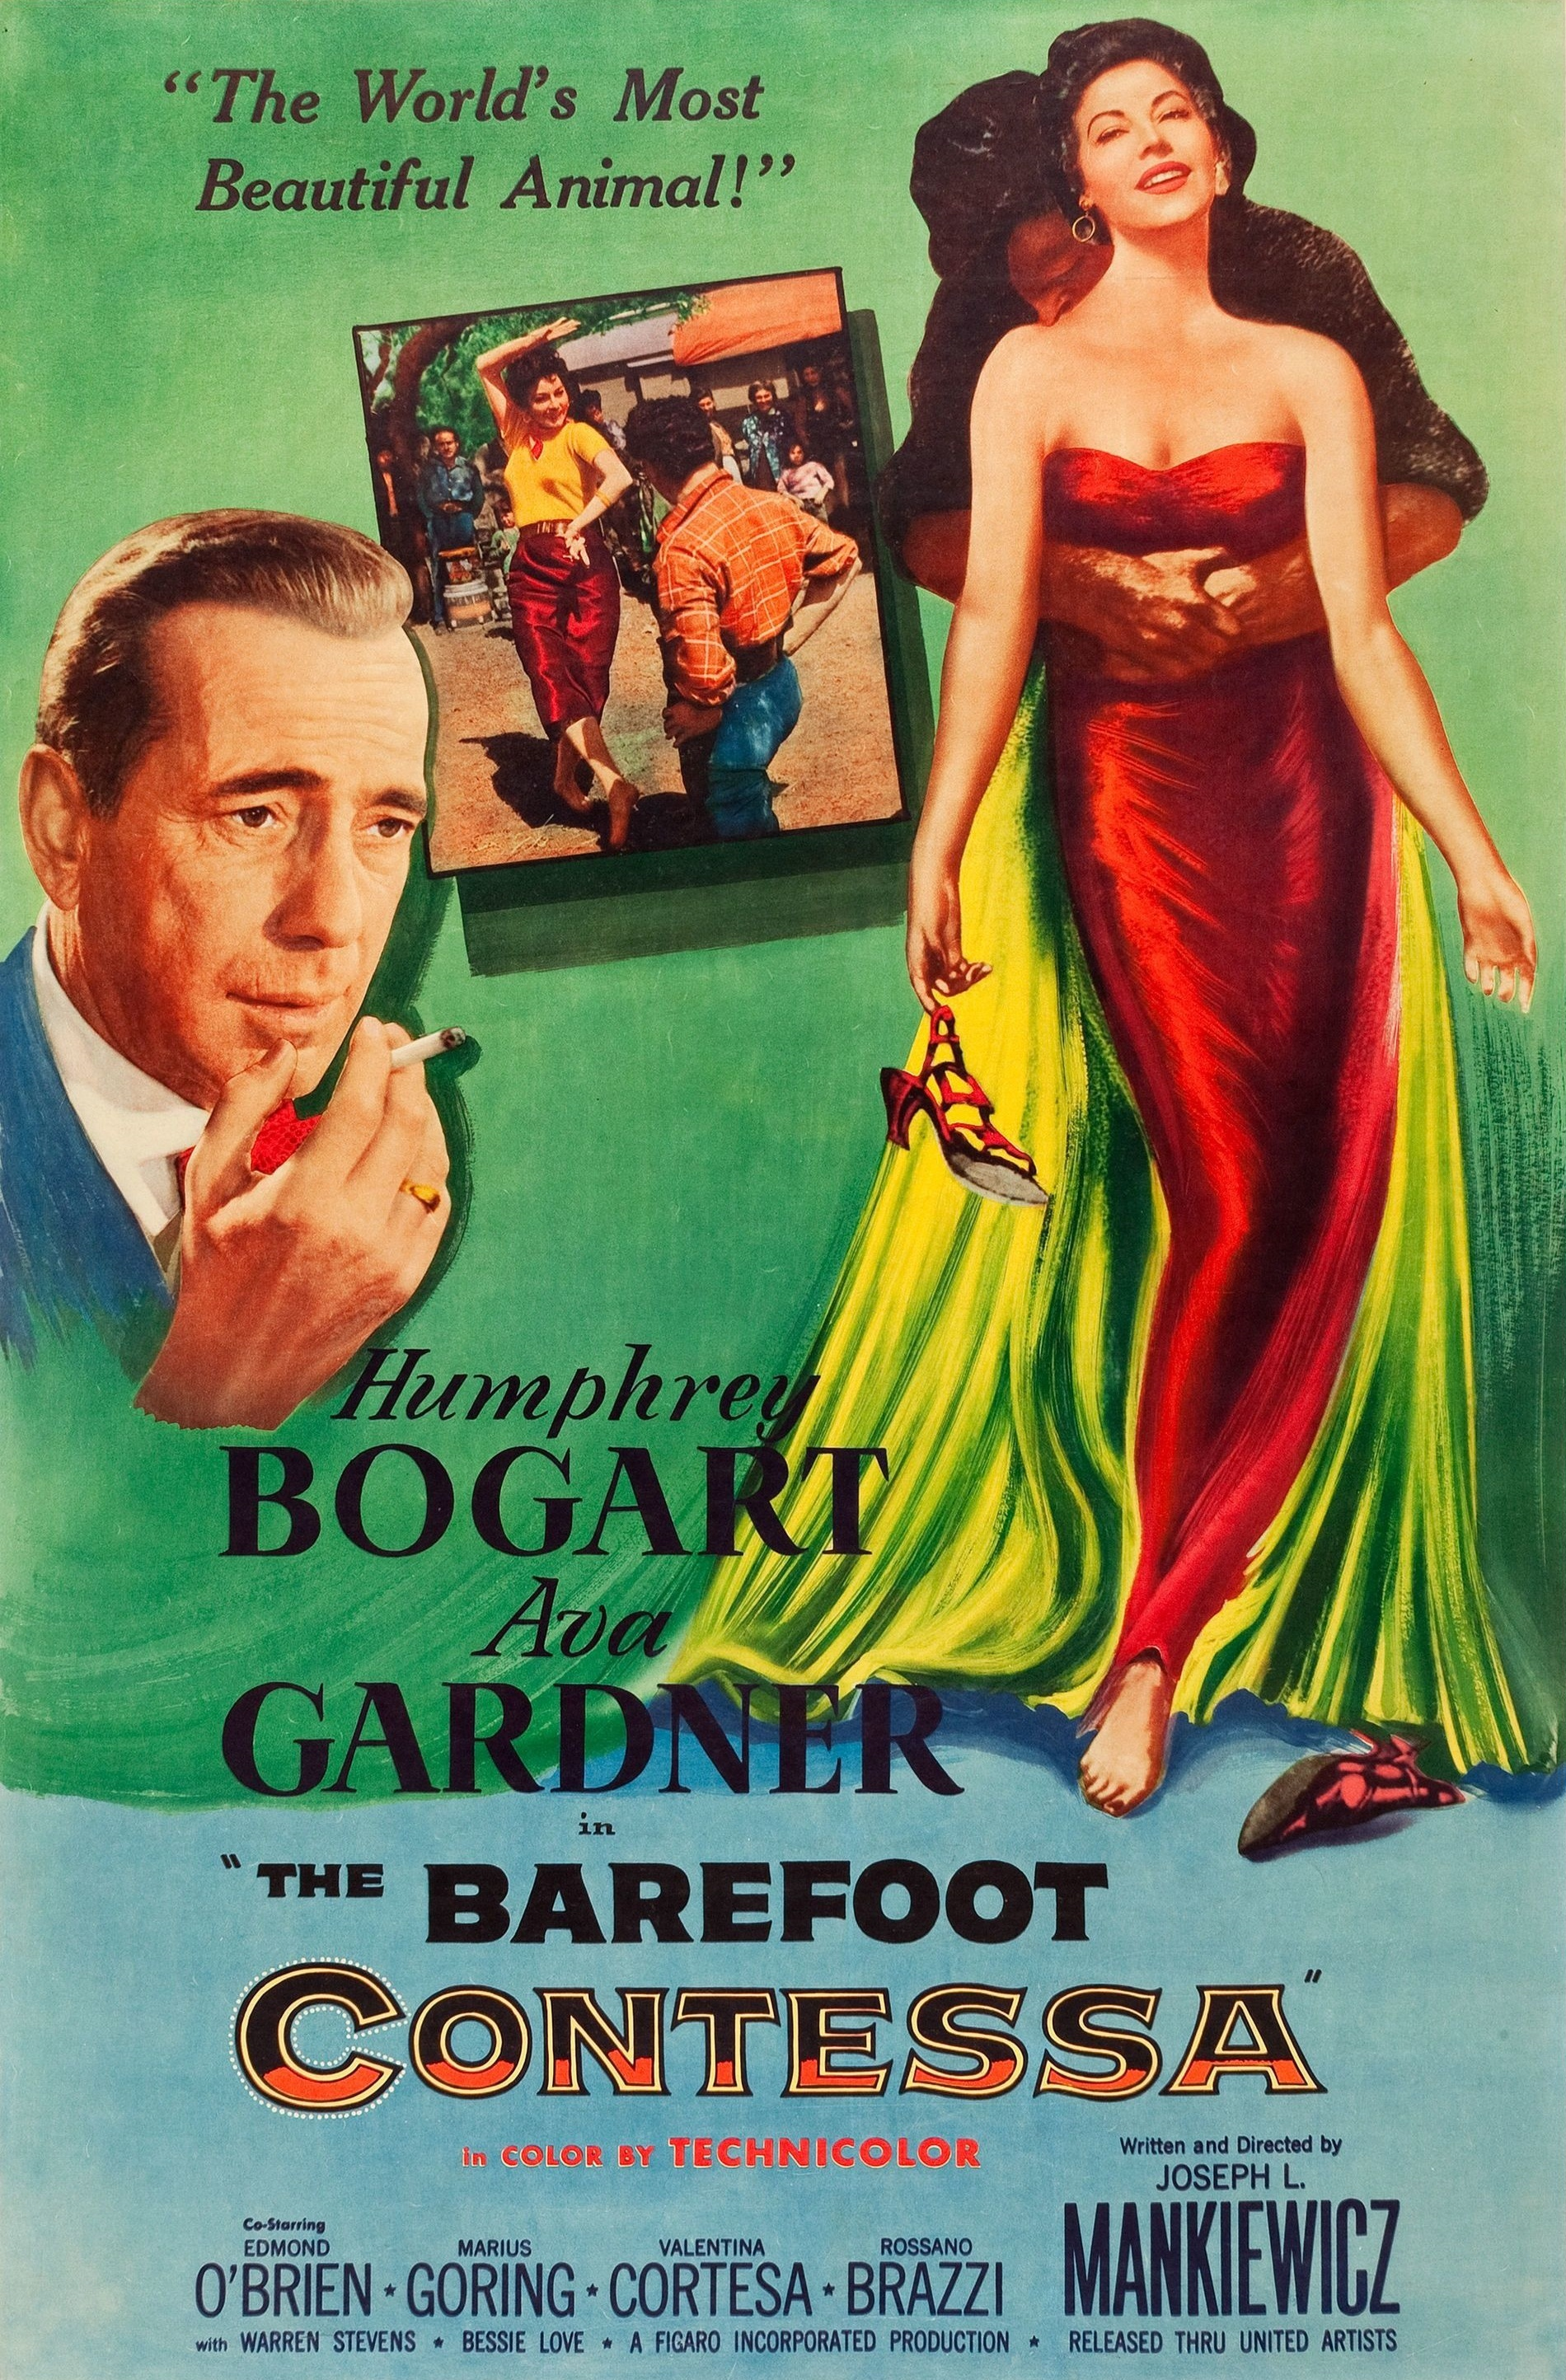 Revisiting THE BAREFOOT CONTESSA